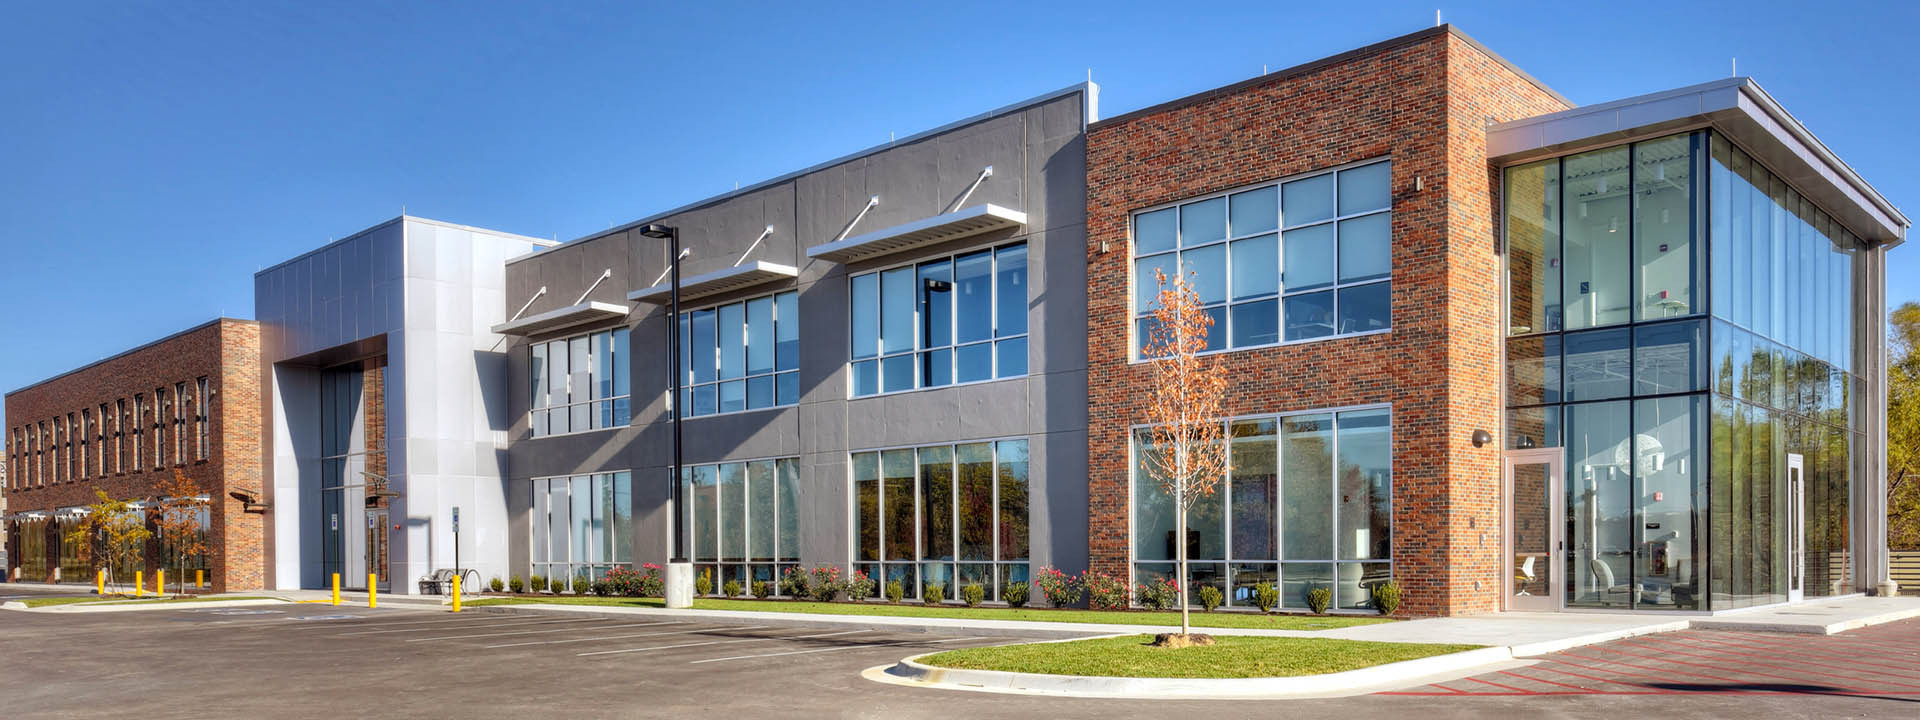 2200 Bentonville is an investment property managed by NAS